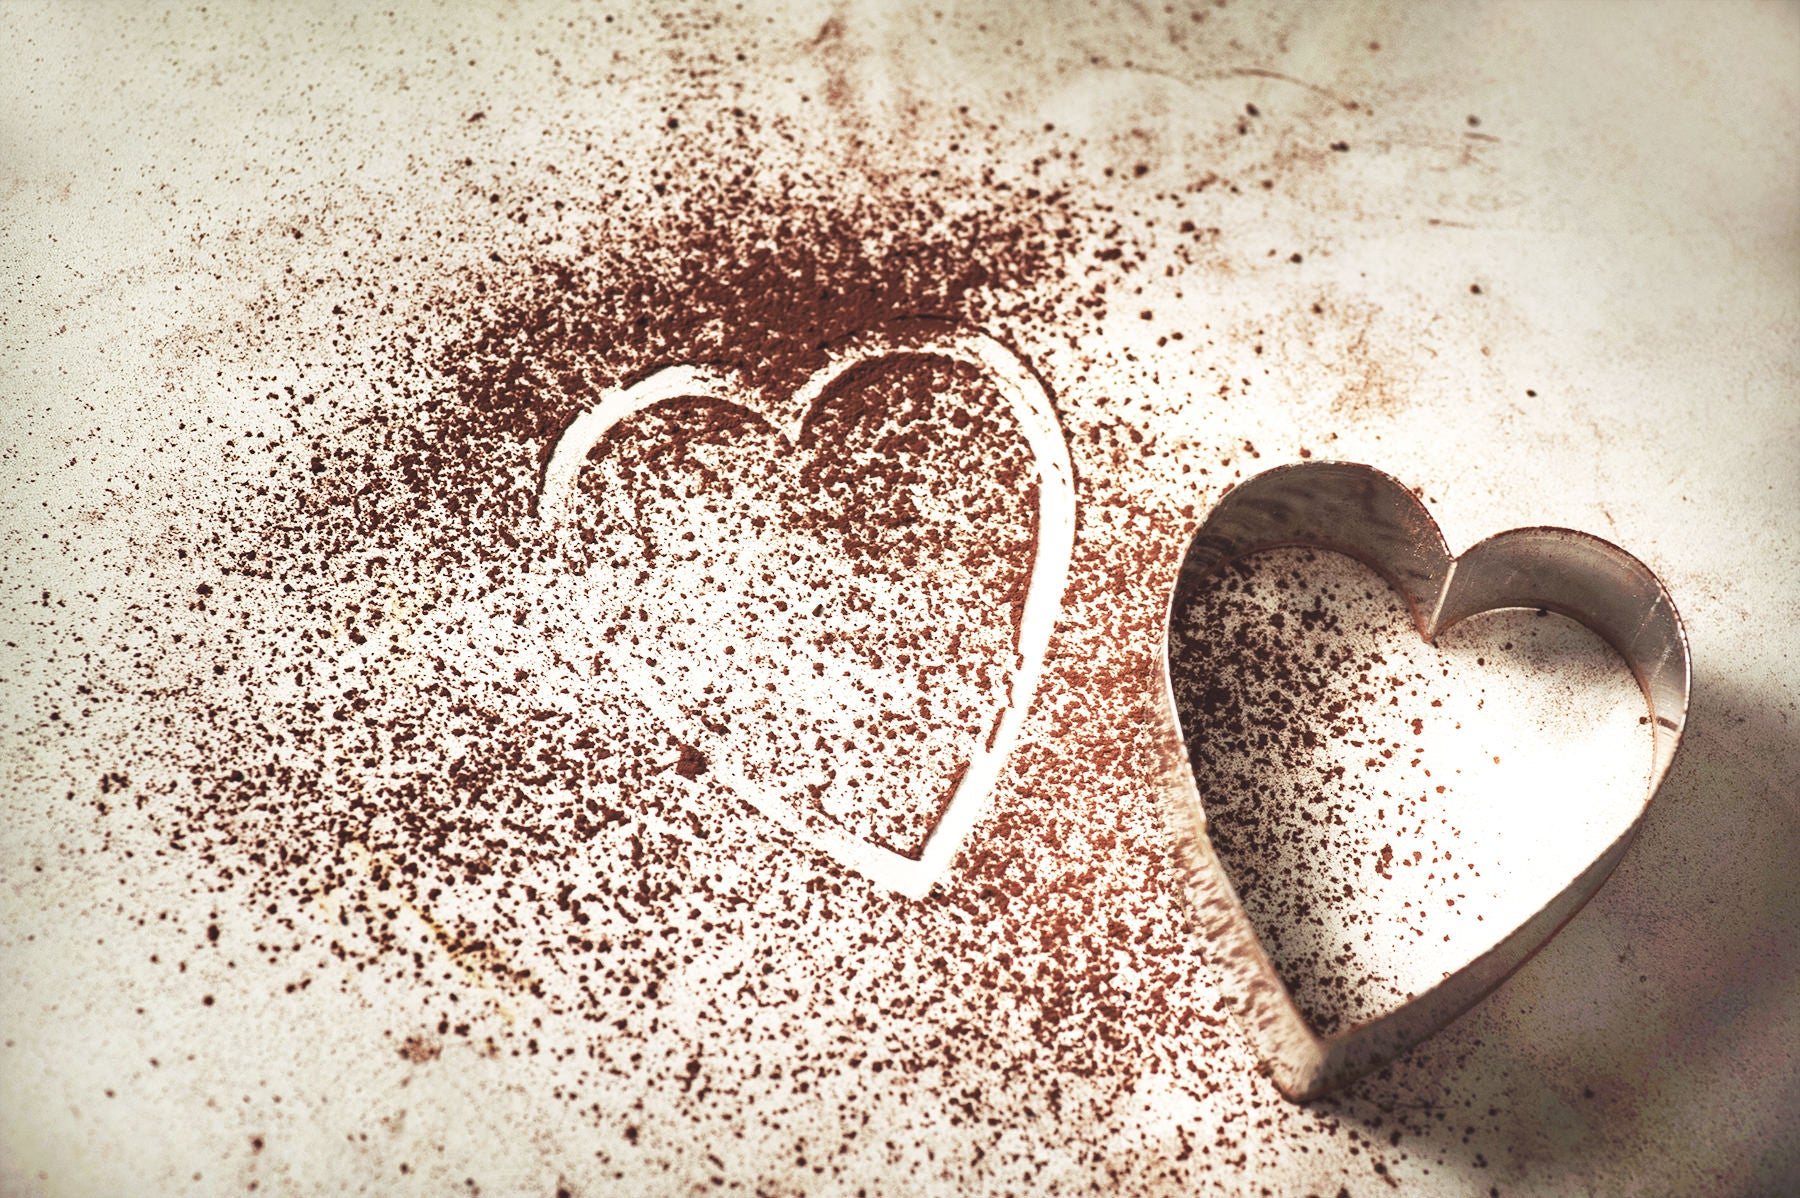 Cocoa powder with a heart shape in the powder from a heart shaped cookie cutter that is next to the cocoa powder.